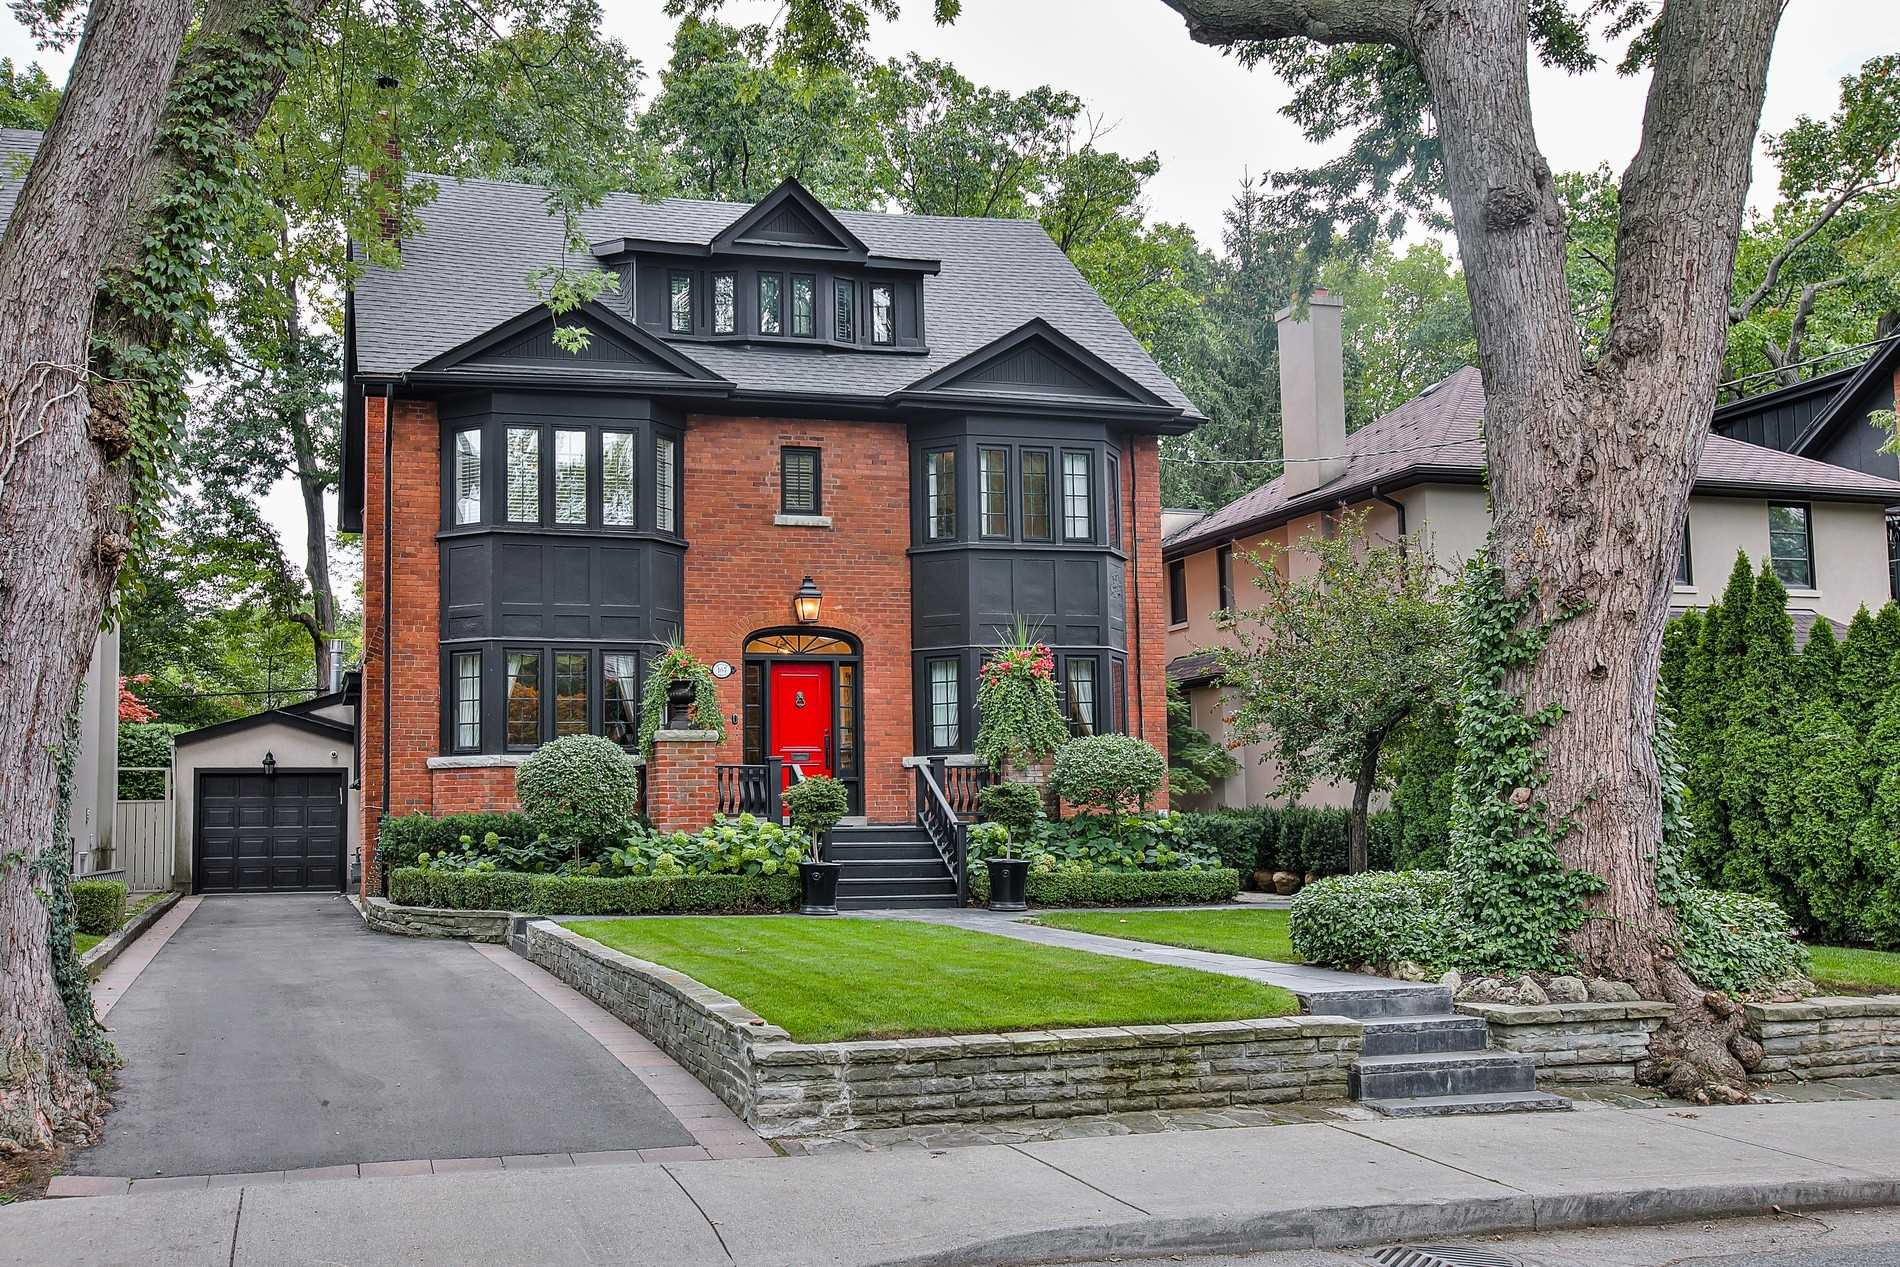 167 Douglas Dr, Toronto, Ontario M4W2B6, 5 Bedrooms Bedrooms, 12 Rooms Rooms,5 BathroomsBathrooms,Detached,For Sale,Douglas,C4911755